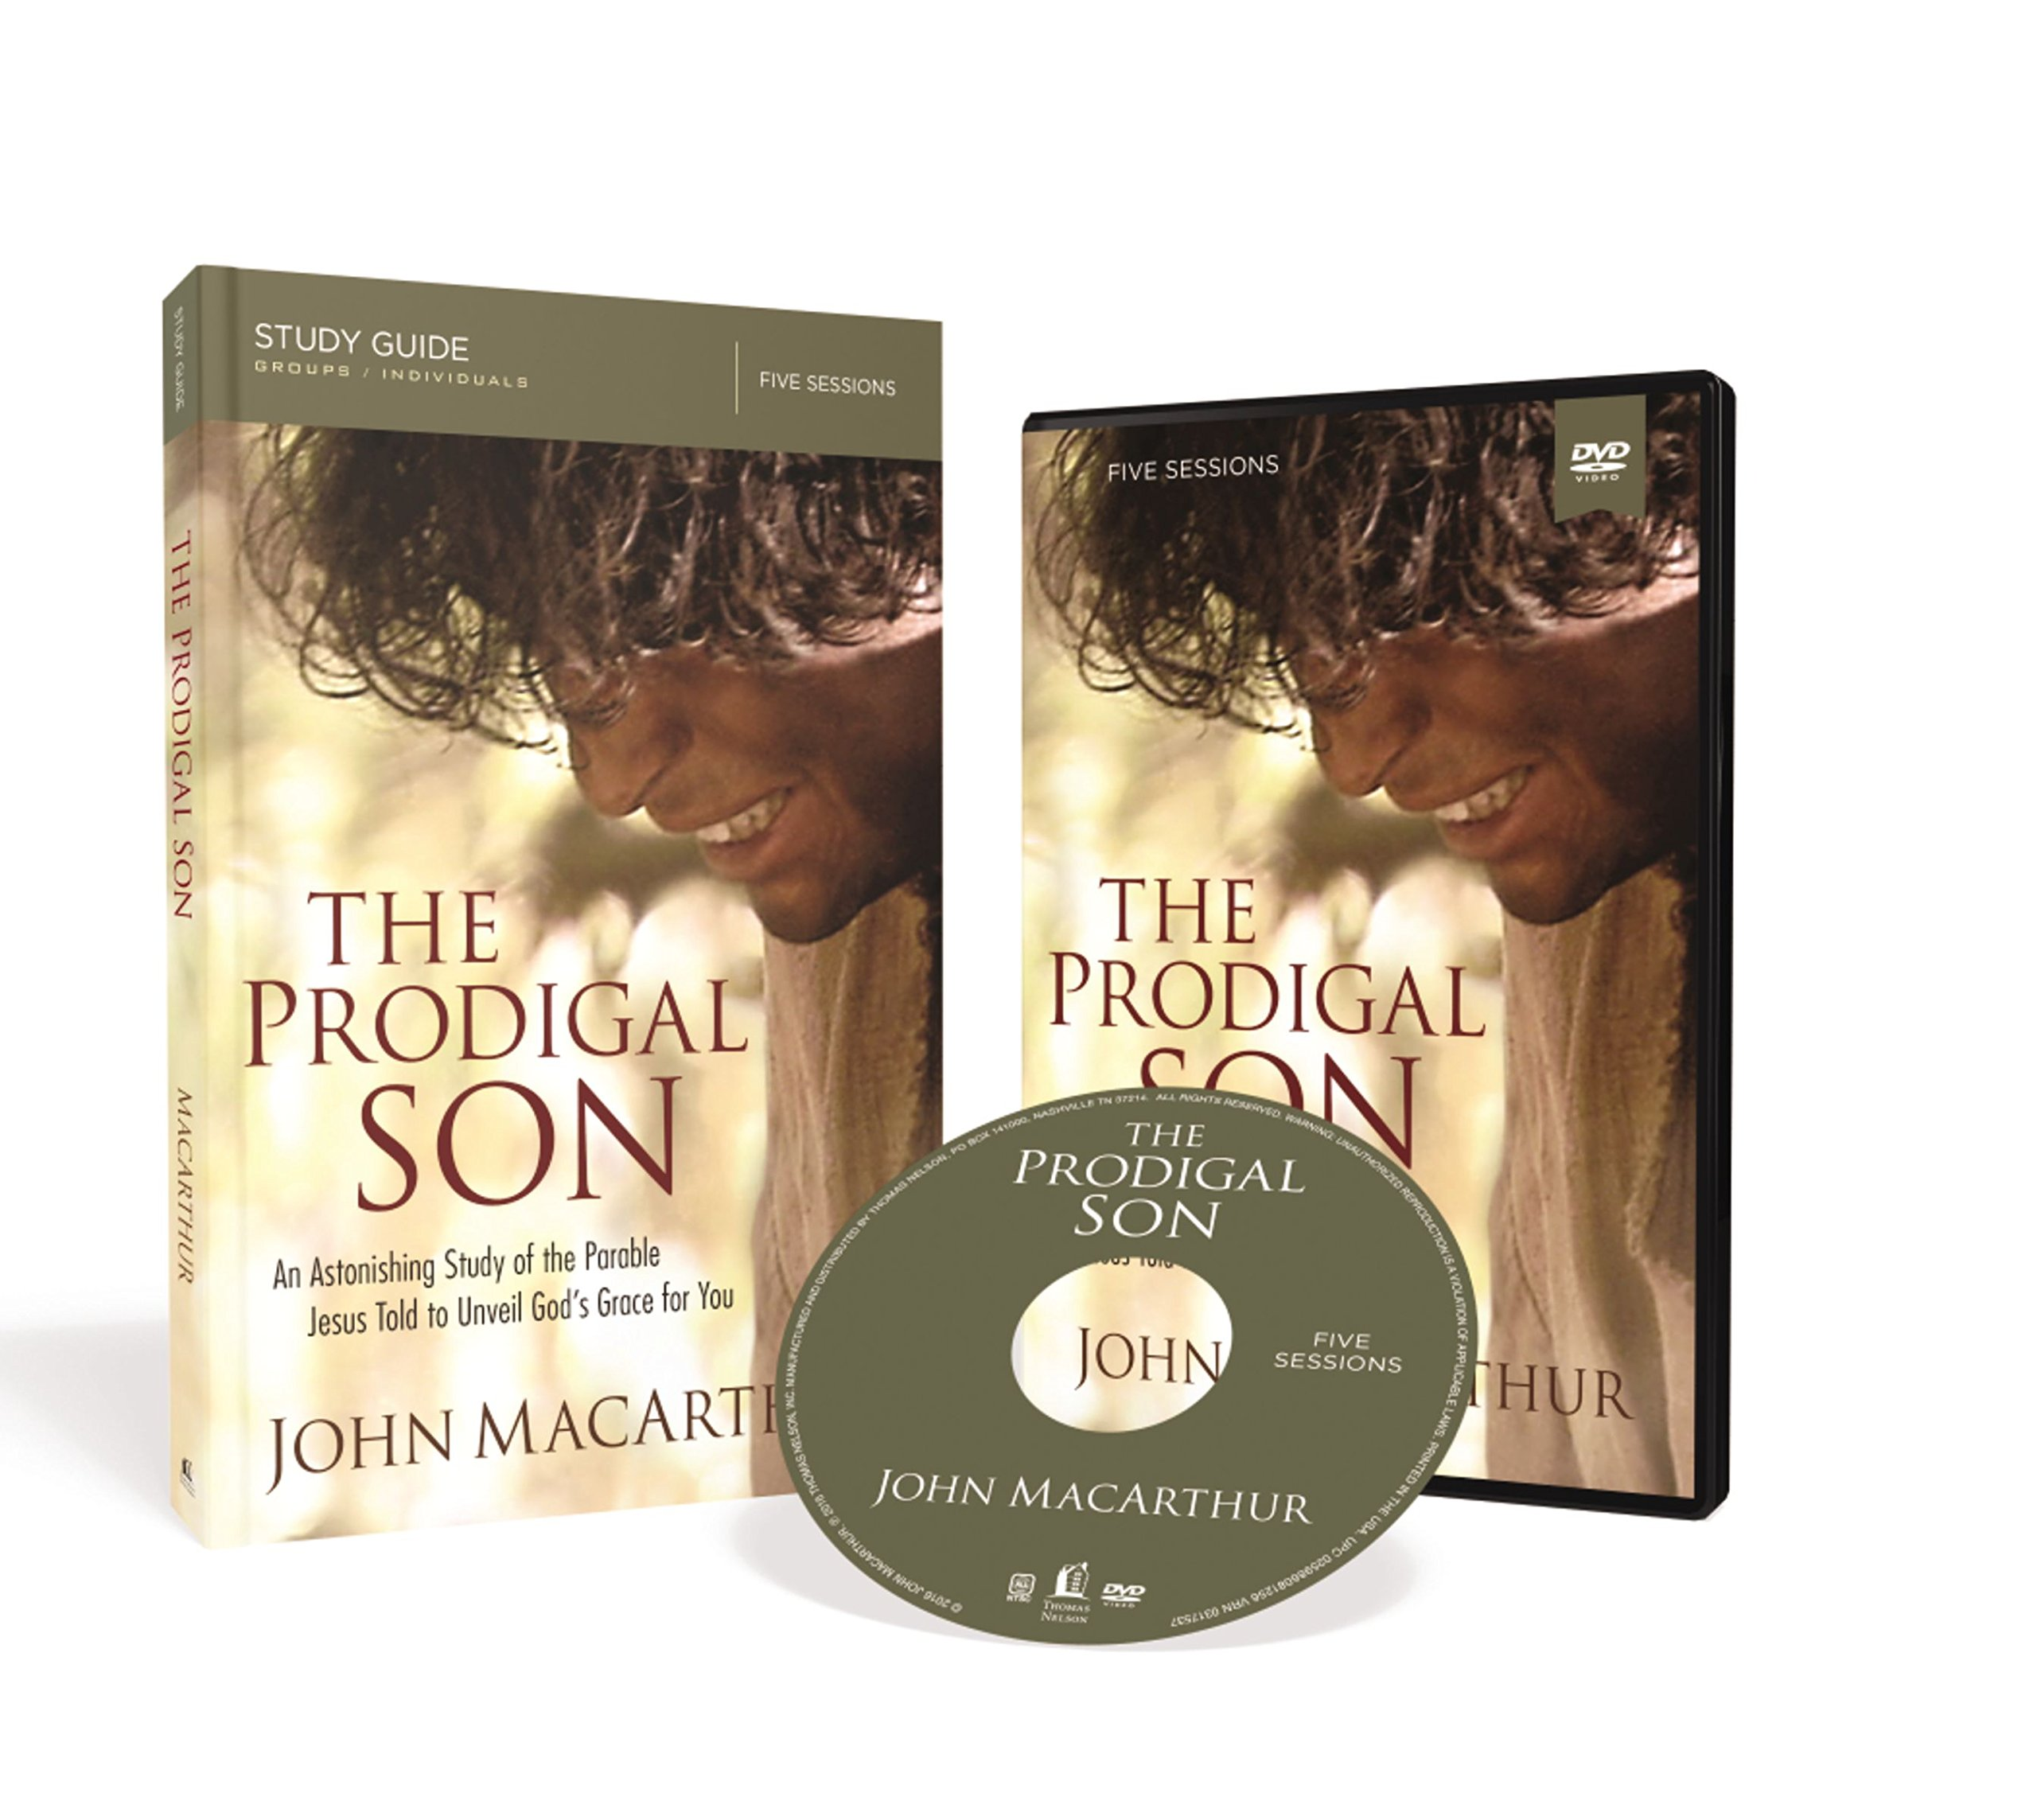 the prodigal son study guide with dvd an astonishing study of the